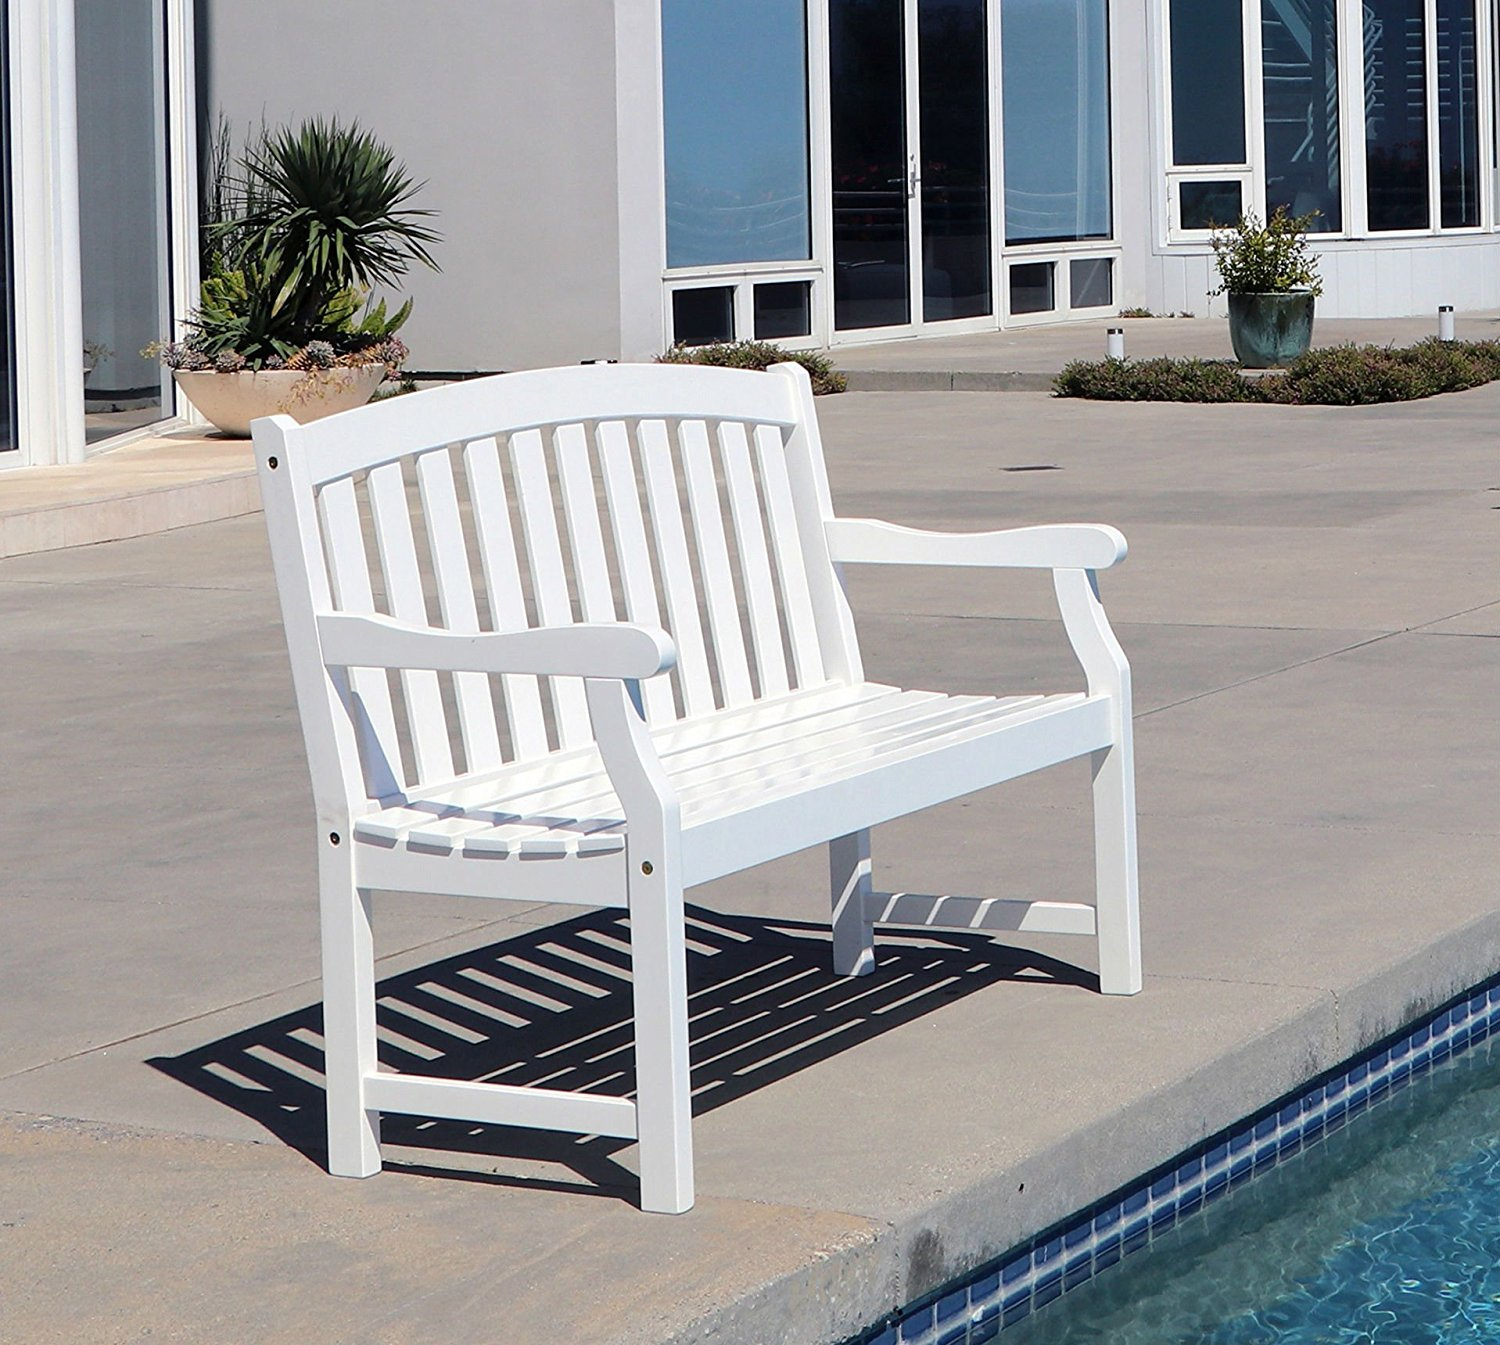 Get Quotations · This White Wood Garden Bench Features A Classic Weather  Resistant Finish. This 2 Seater Is